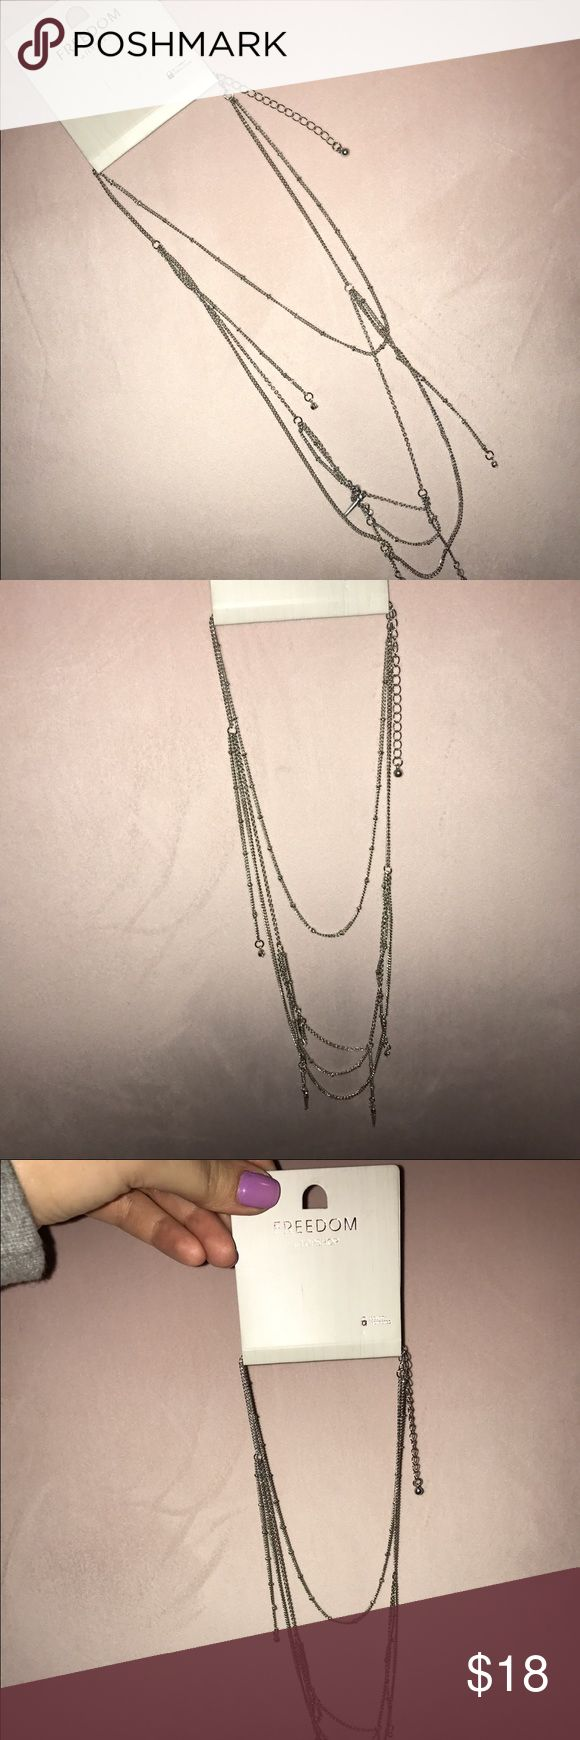 Topshop necklace NWT Freedom of Topshop silver necklace new with tags. In original packaging. Makes any casual outfit look amazing ✨ has adjustable clasp in the back and was bought from an original Topshop location Topshop Jewelry Necklaces